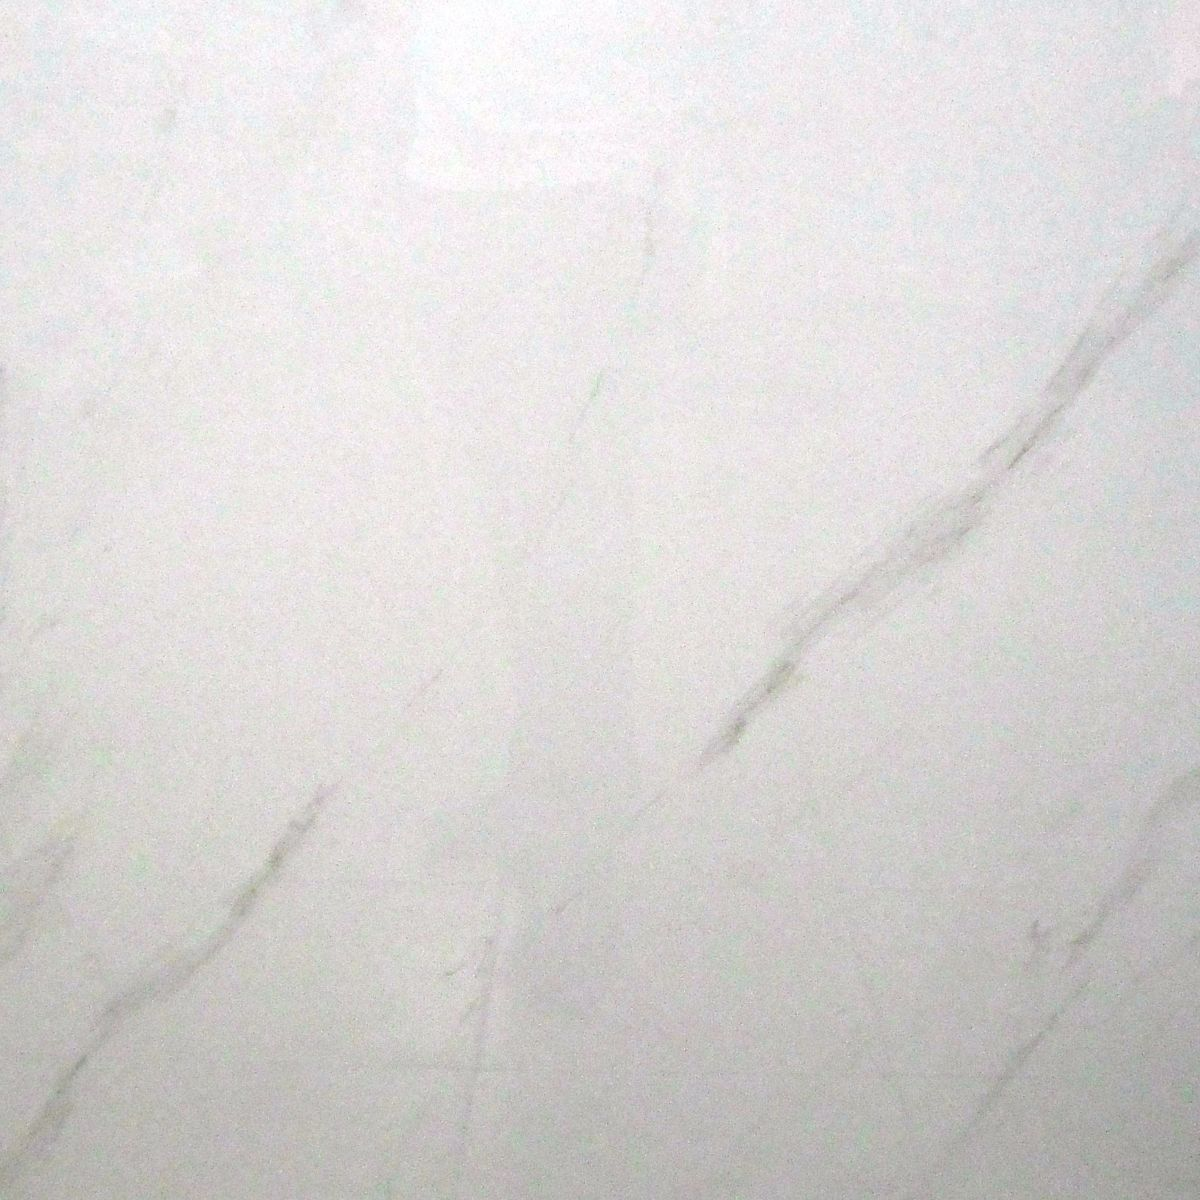 Details about Polished Porcelain Tile 32x32 Iceberg Soft Vein Grey White  Rectified Calacatta